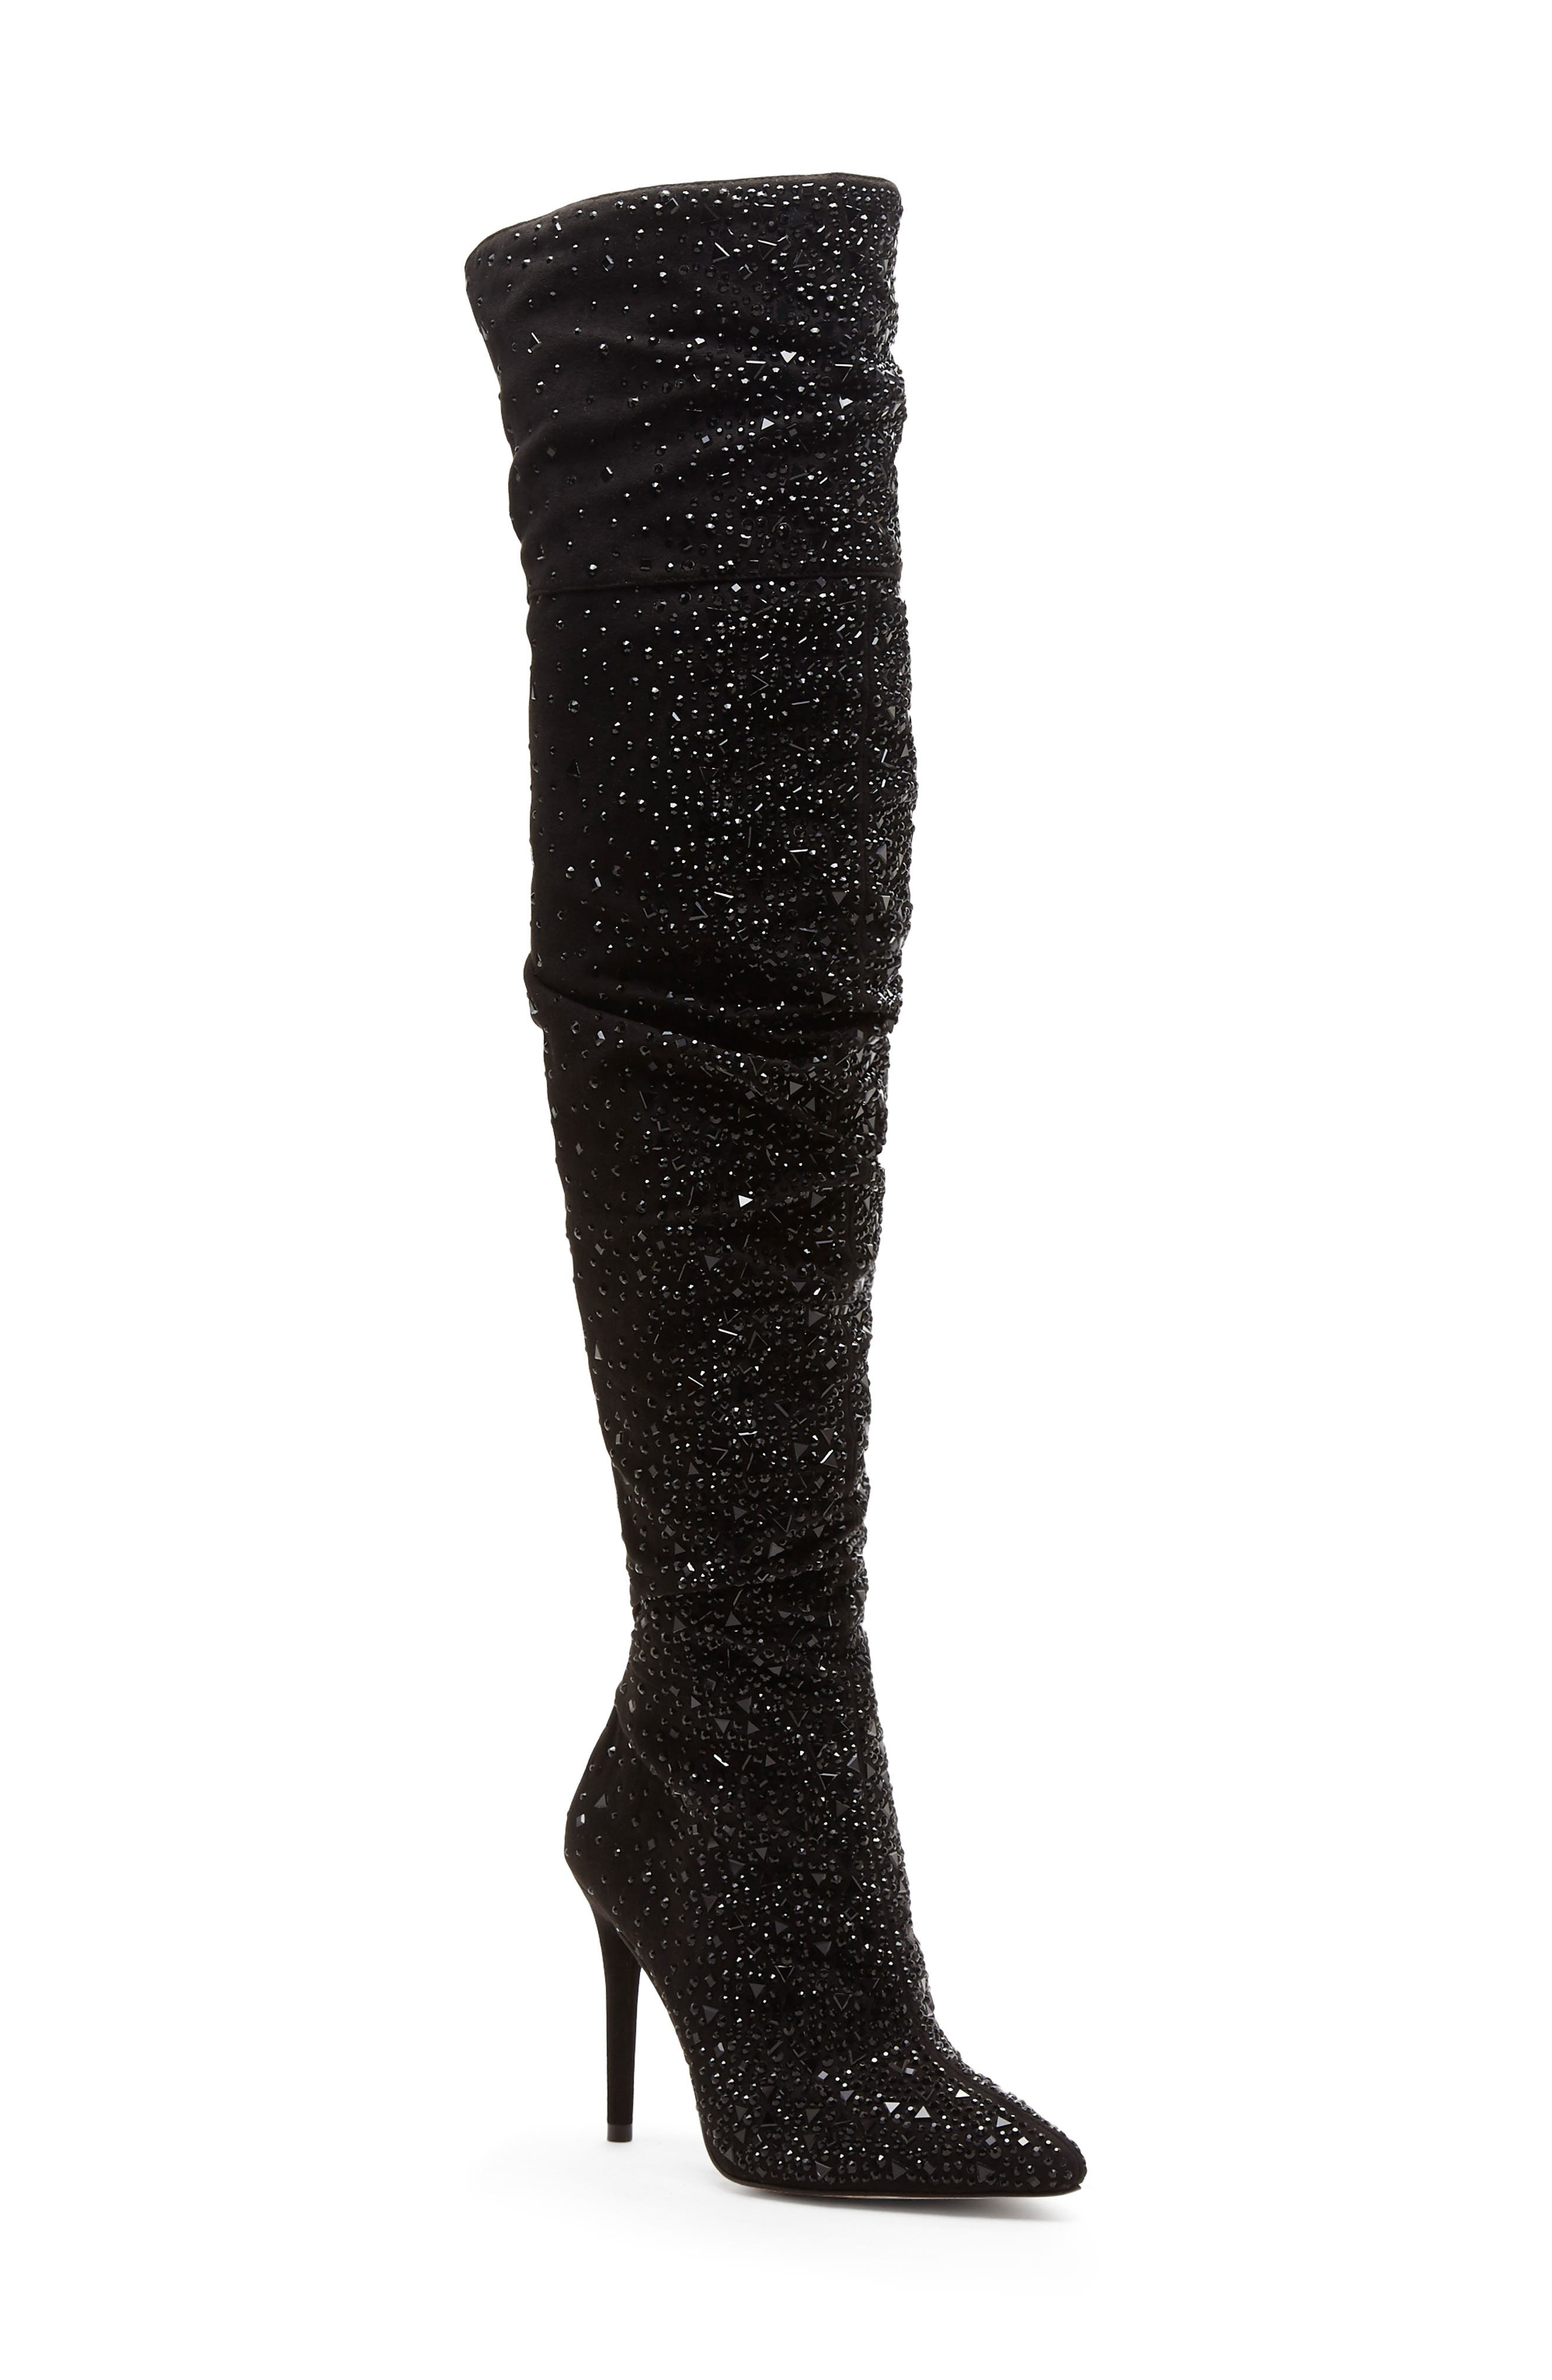 Luxella Over the Knee Boot,                             Main thumbnail 1, color,                             BLACK SPARKLES